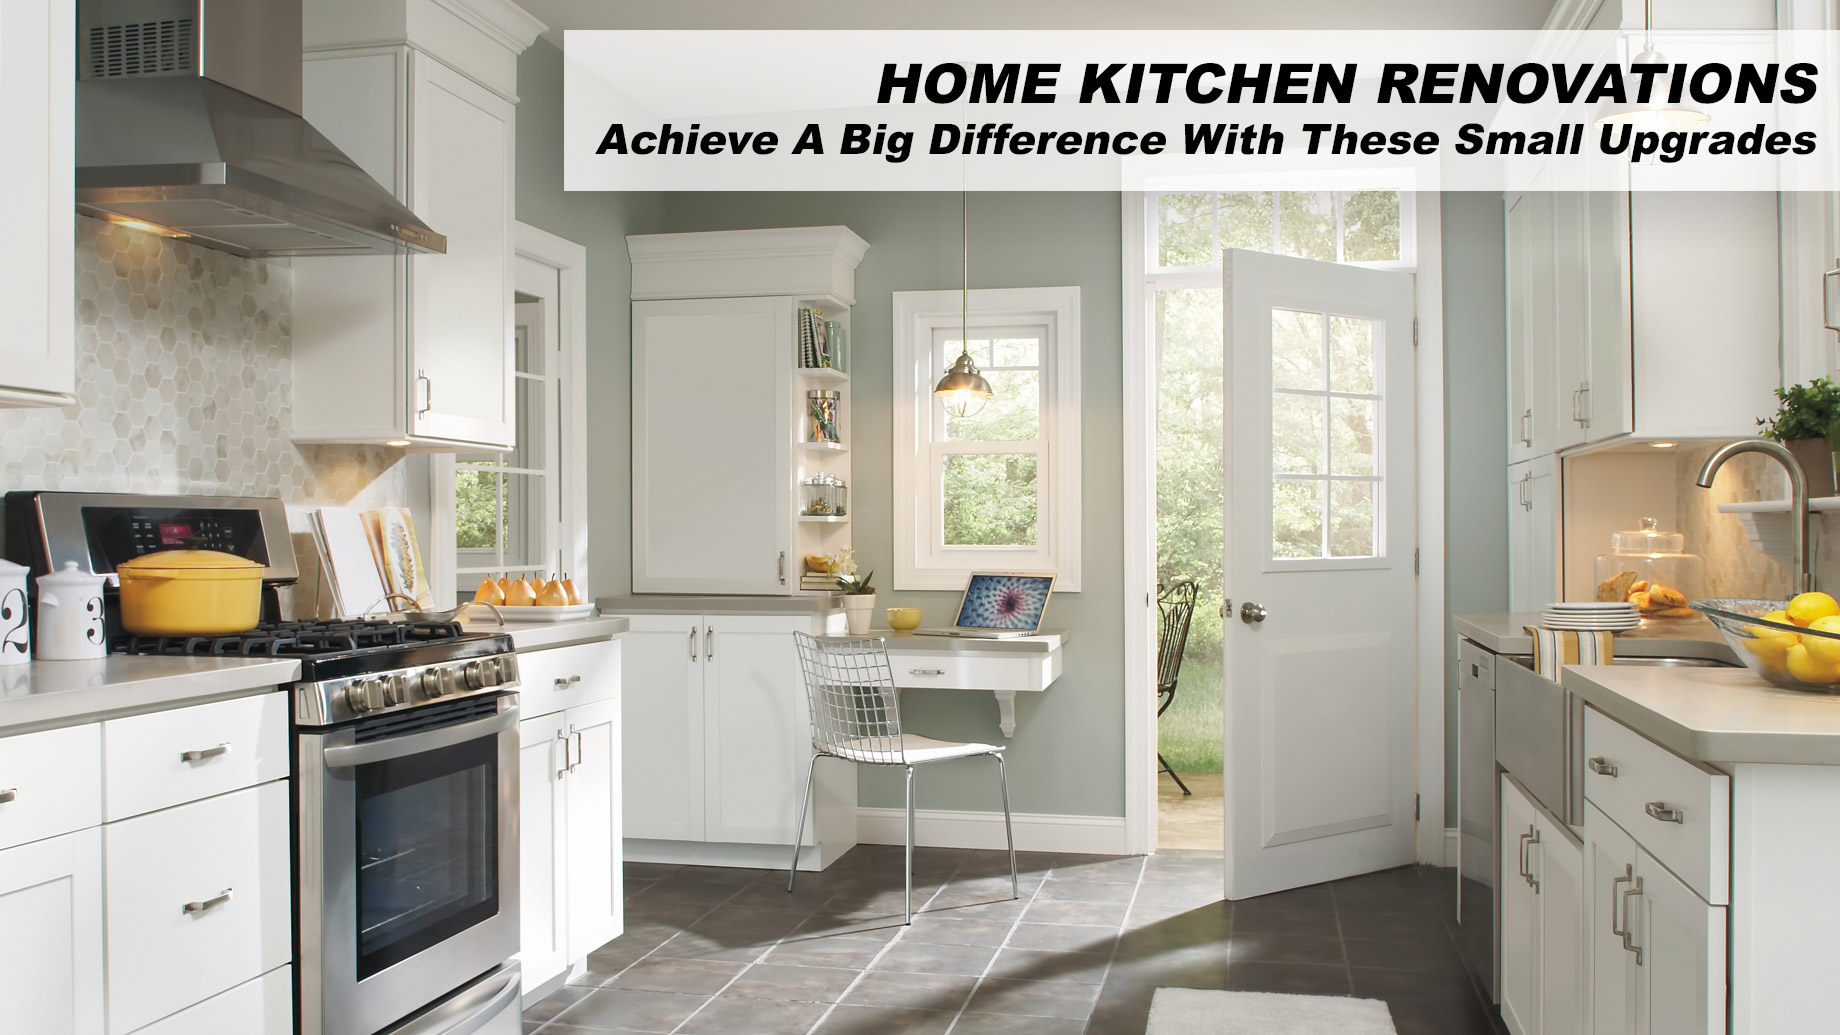 Home Kitchen Renovations - Achieve A Big Difference With These Small Upgrades